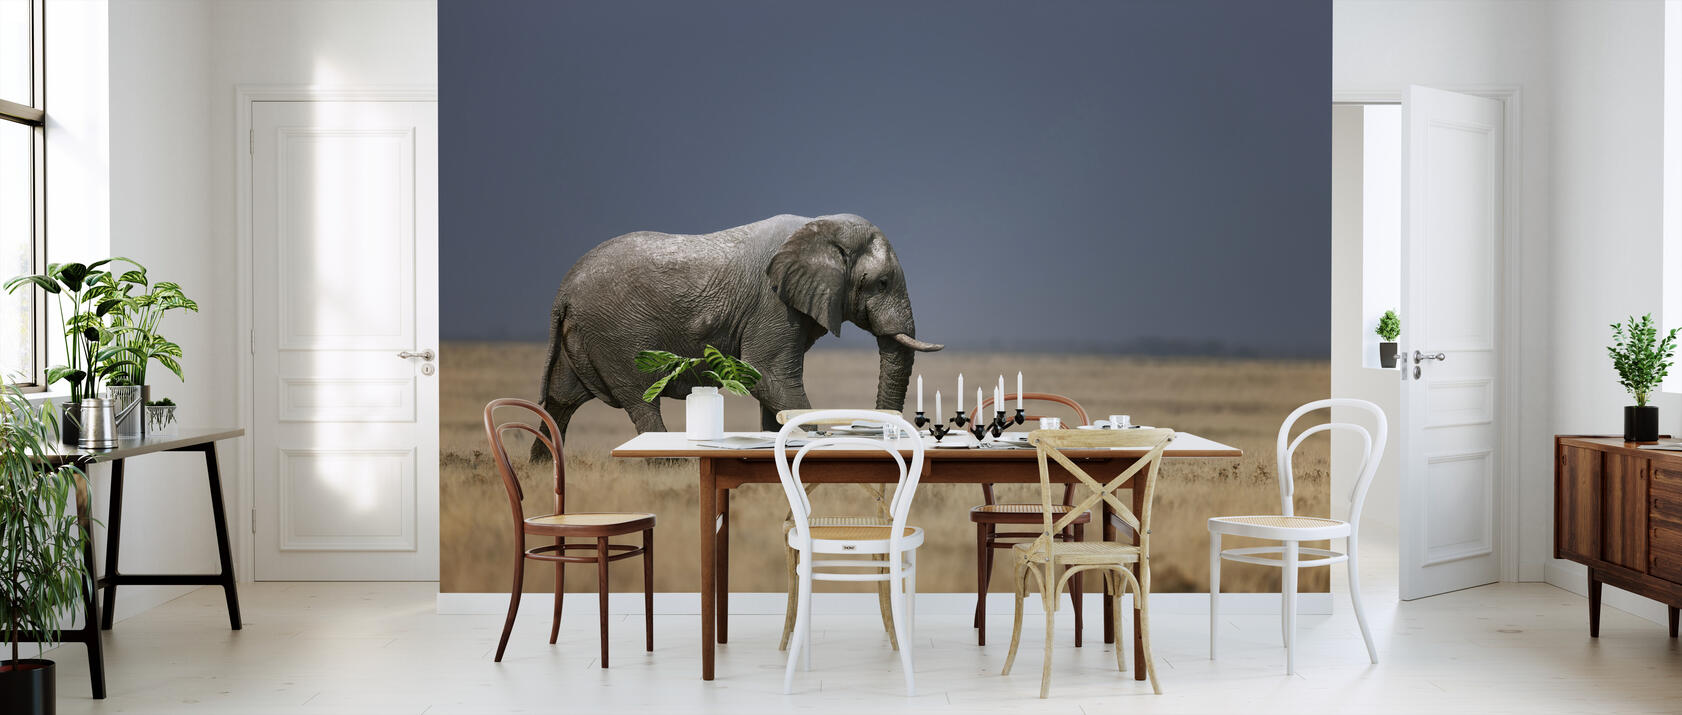 elephant in grassfield fototapete nach ma photowall. Black Bedroom Furniture Sets. Home Design Ideas